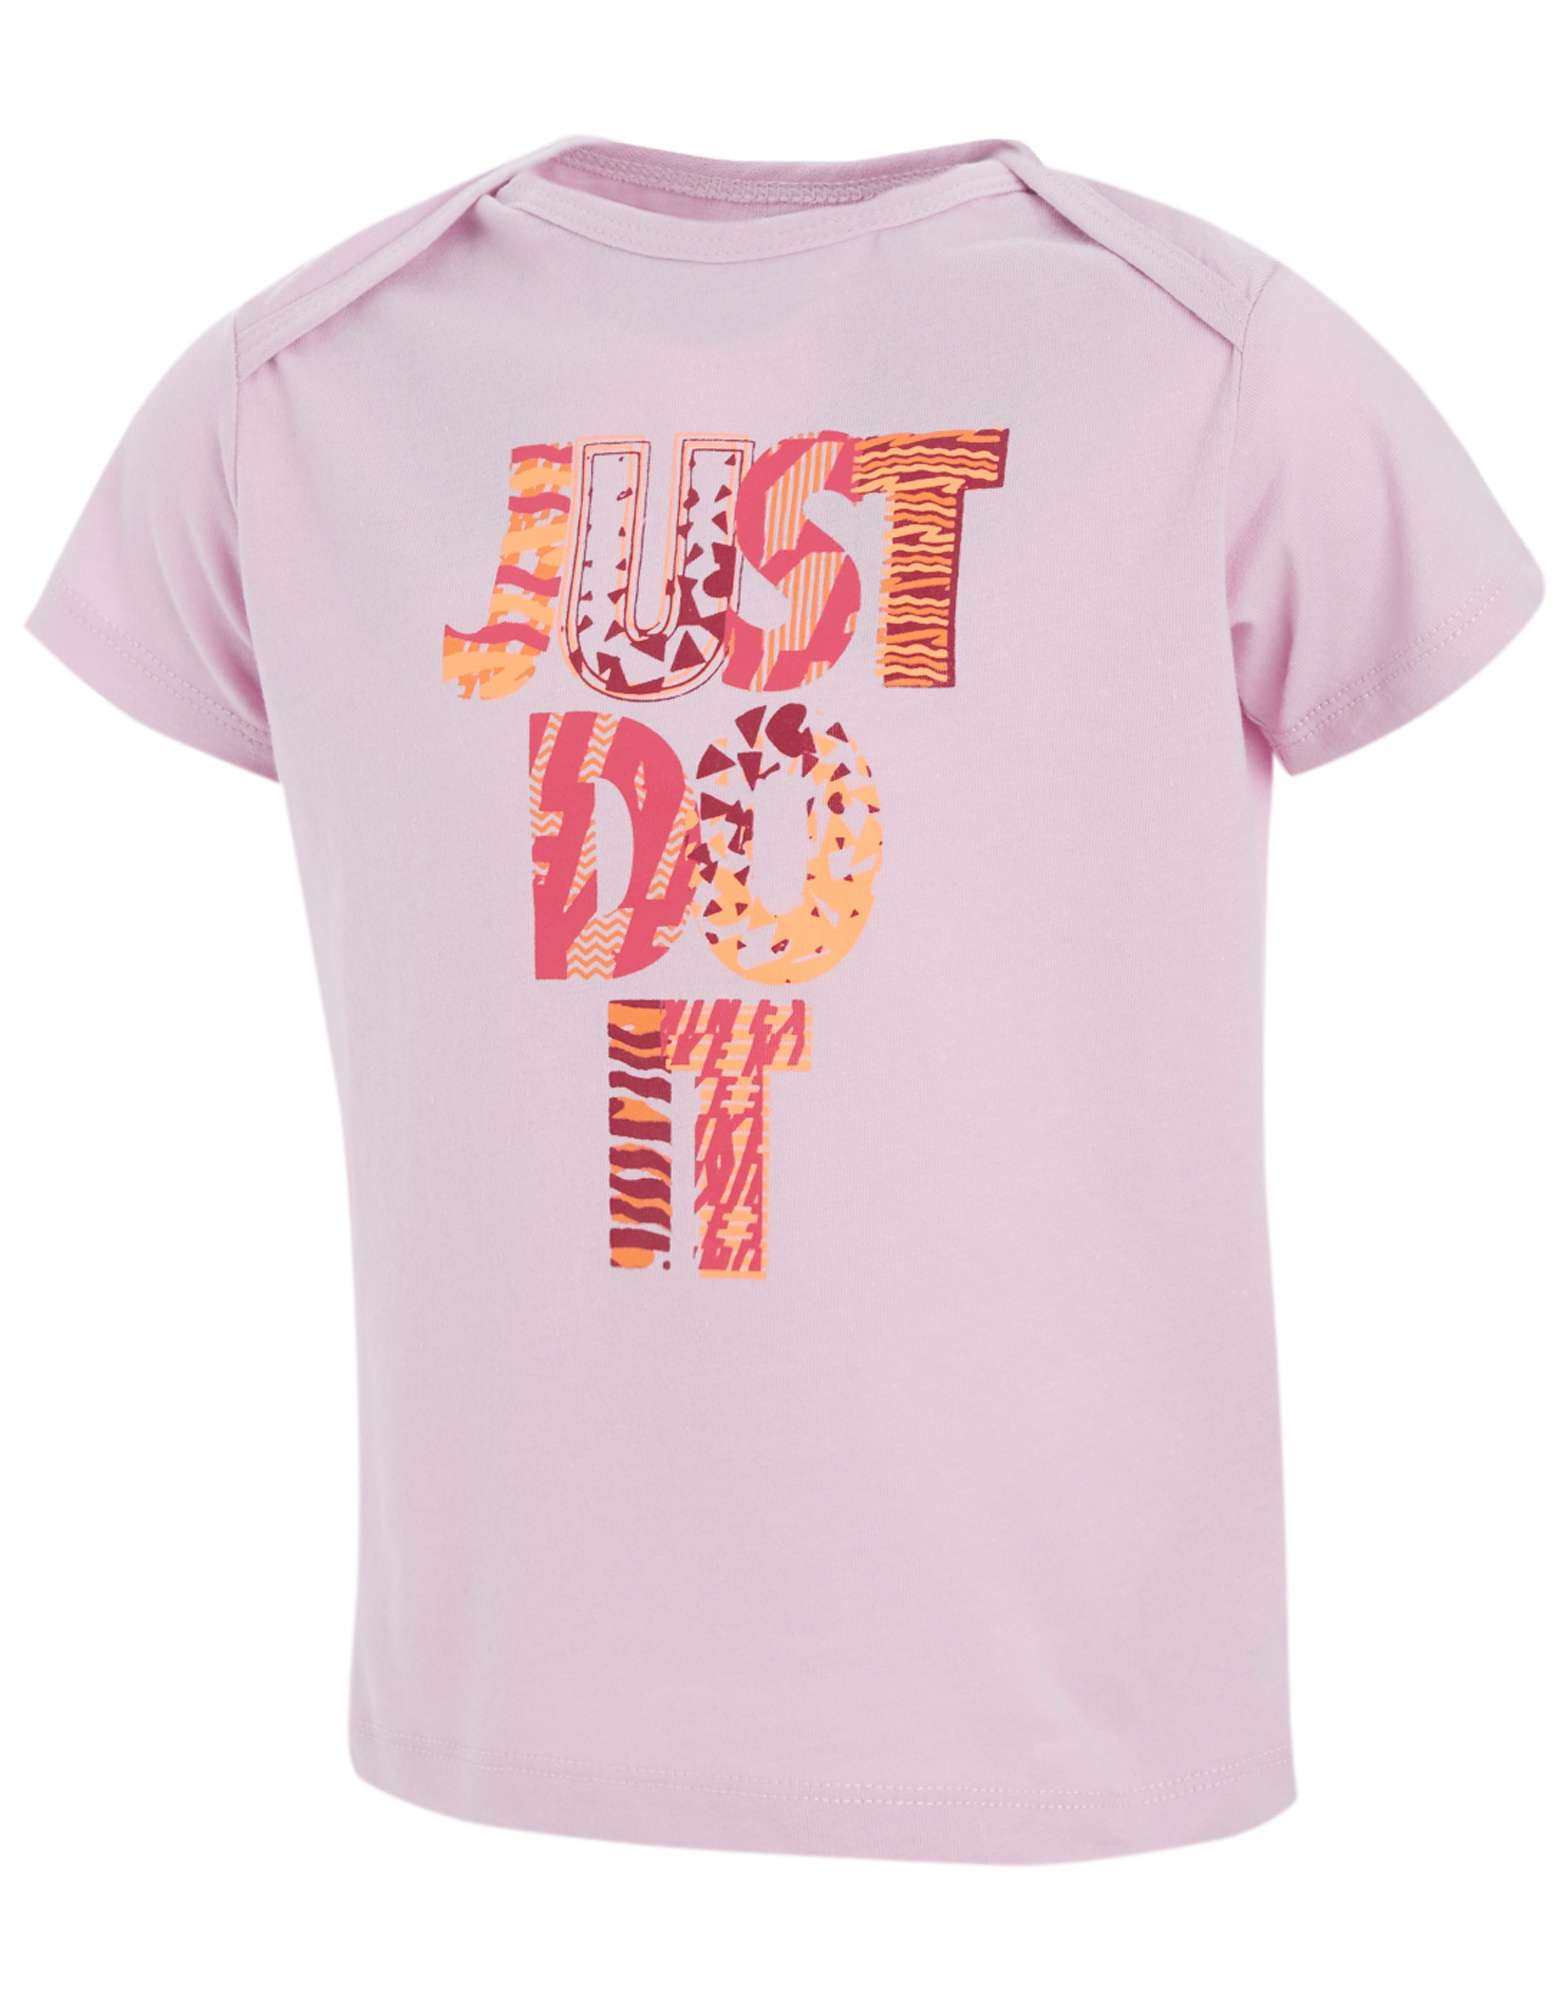 Nike Girls Just Do It T-Shirt Infants